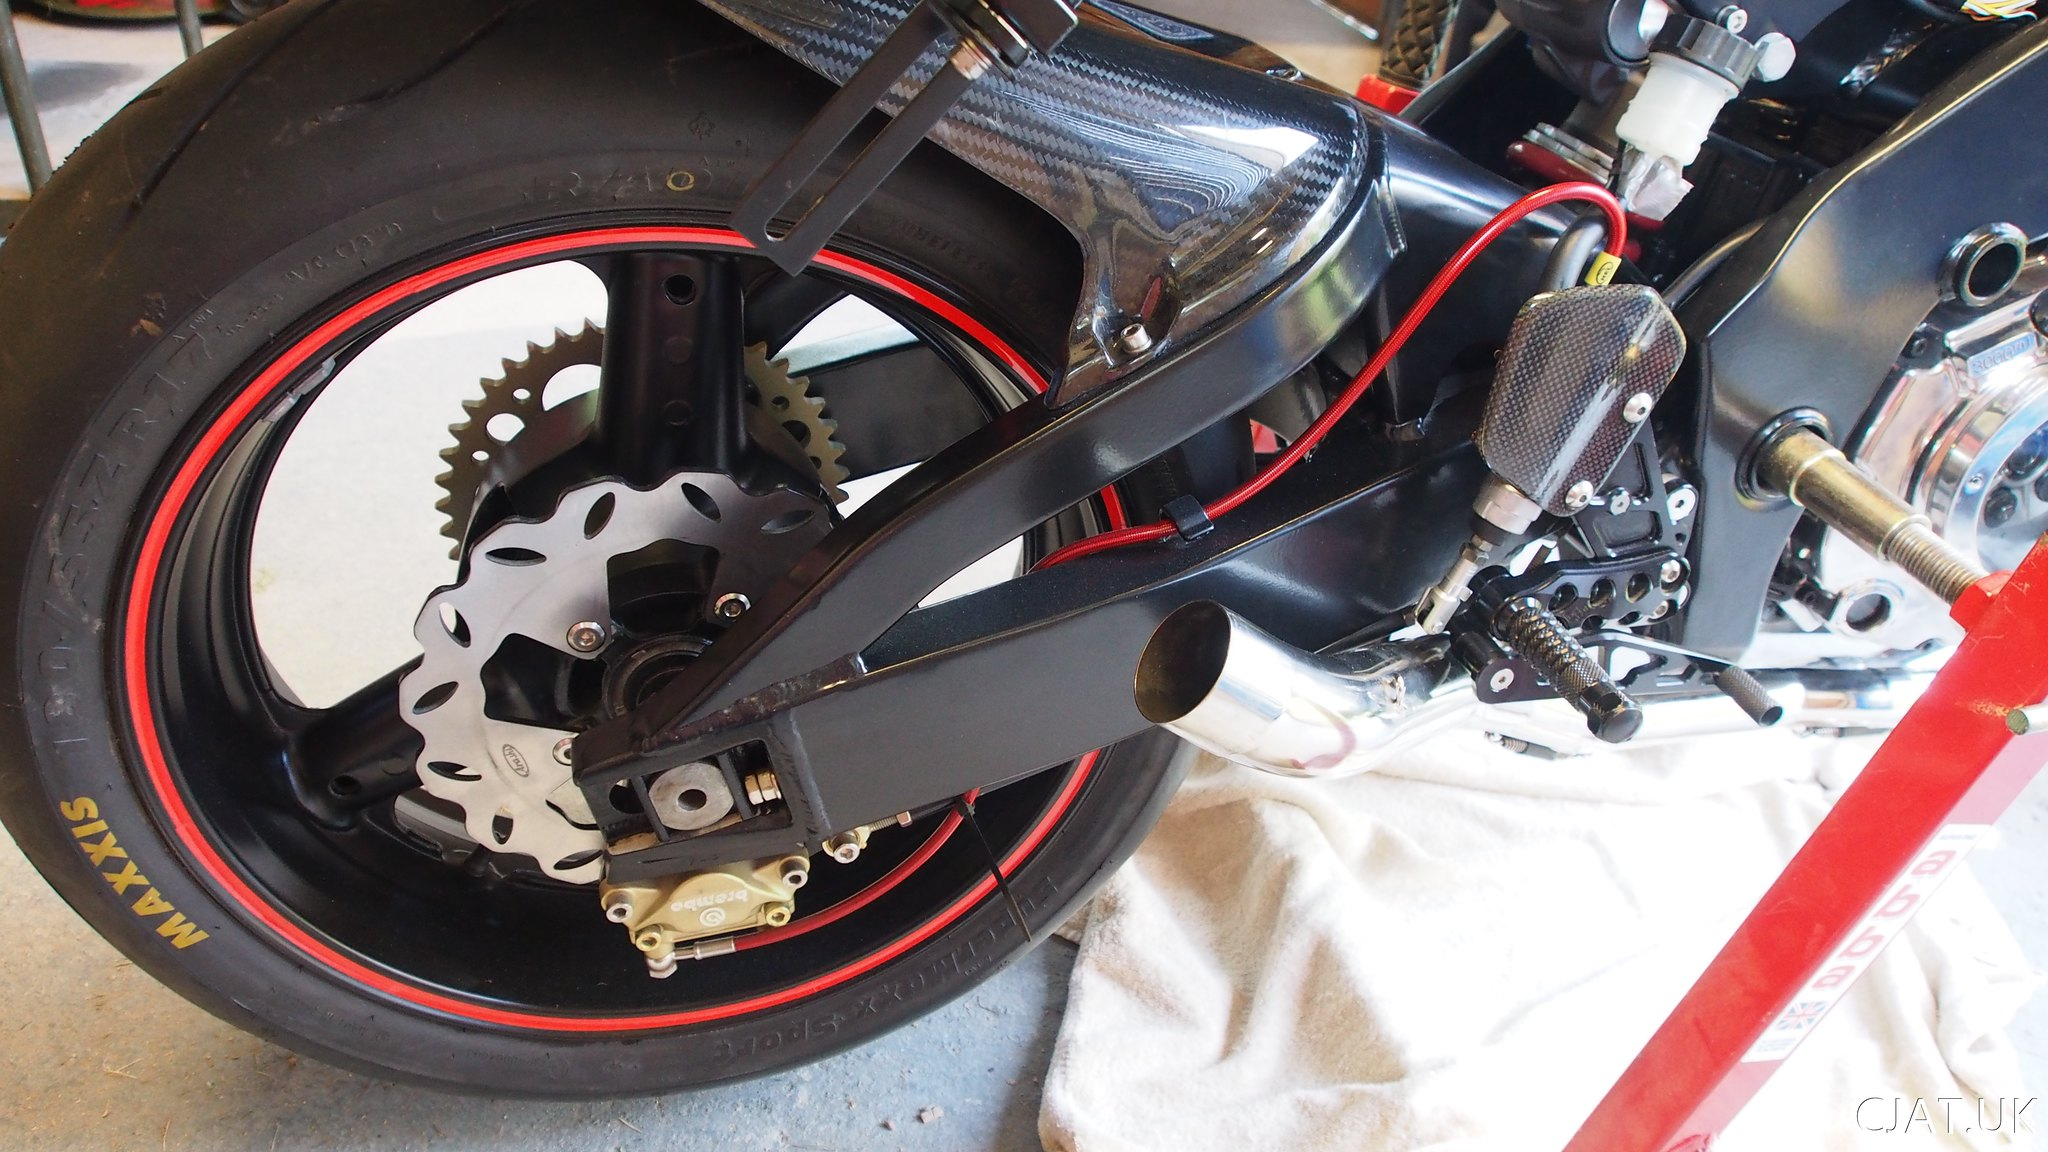 Suzuki RF900 StreetFighter braced swingarm with carbon mudguard and gillies rear set, 180 tyre wavy disk brake and brembo caliper